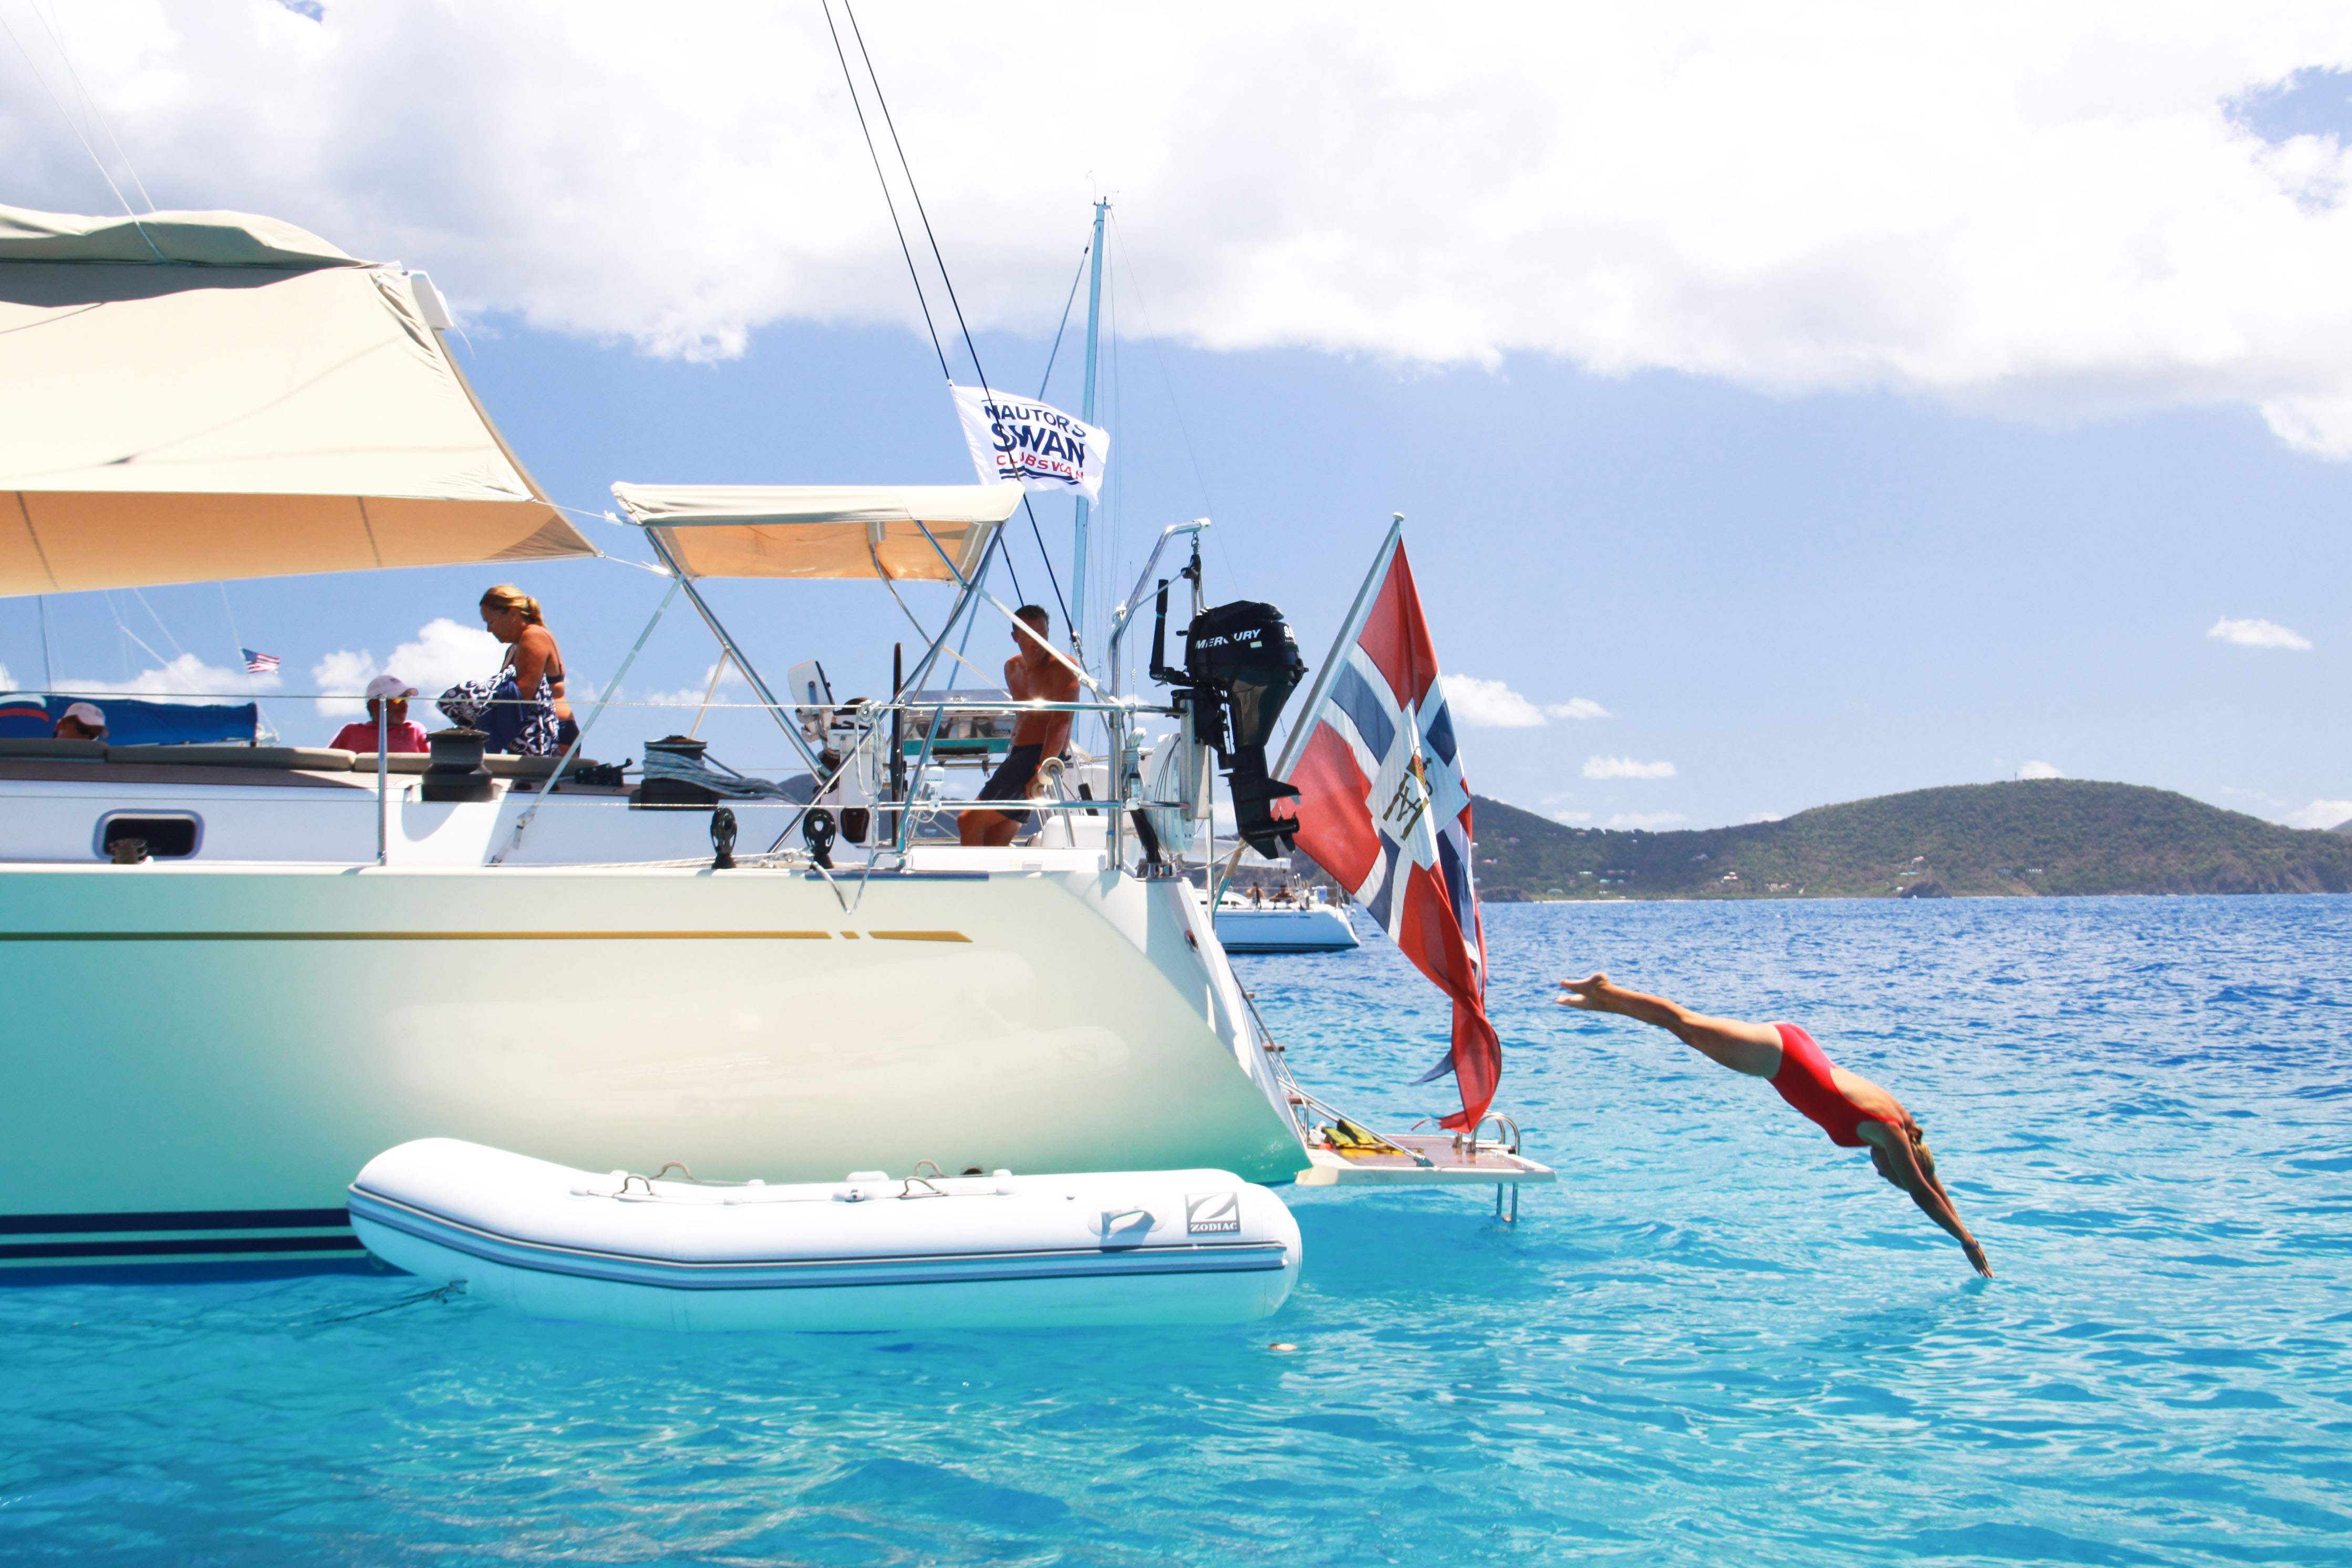 Caribbean Relaxation: The Relaxed Rendezvous Structure Allowed Plenty Of Time